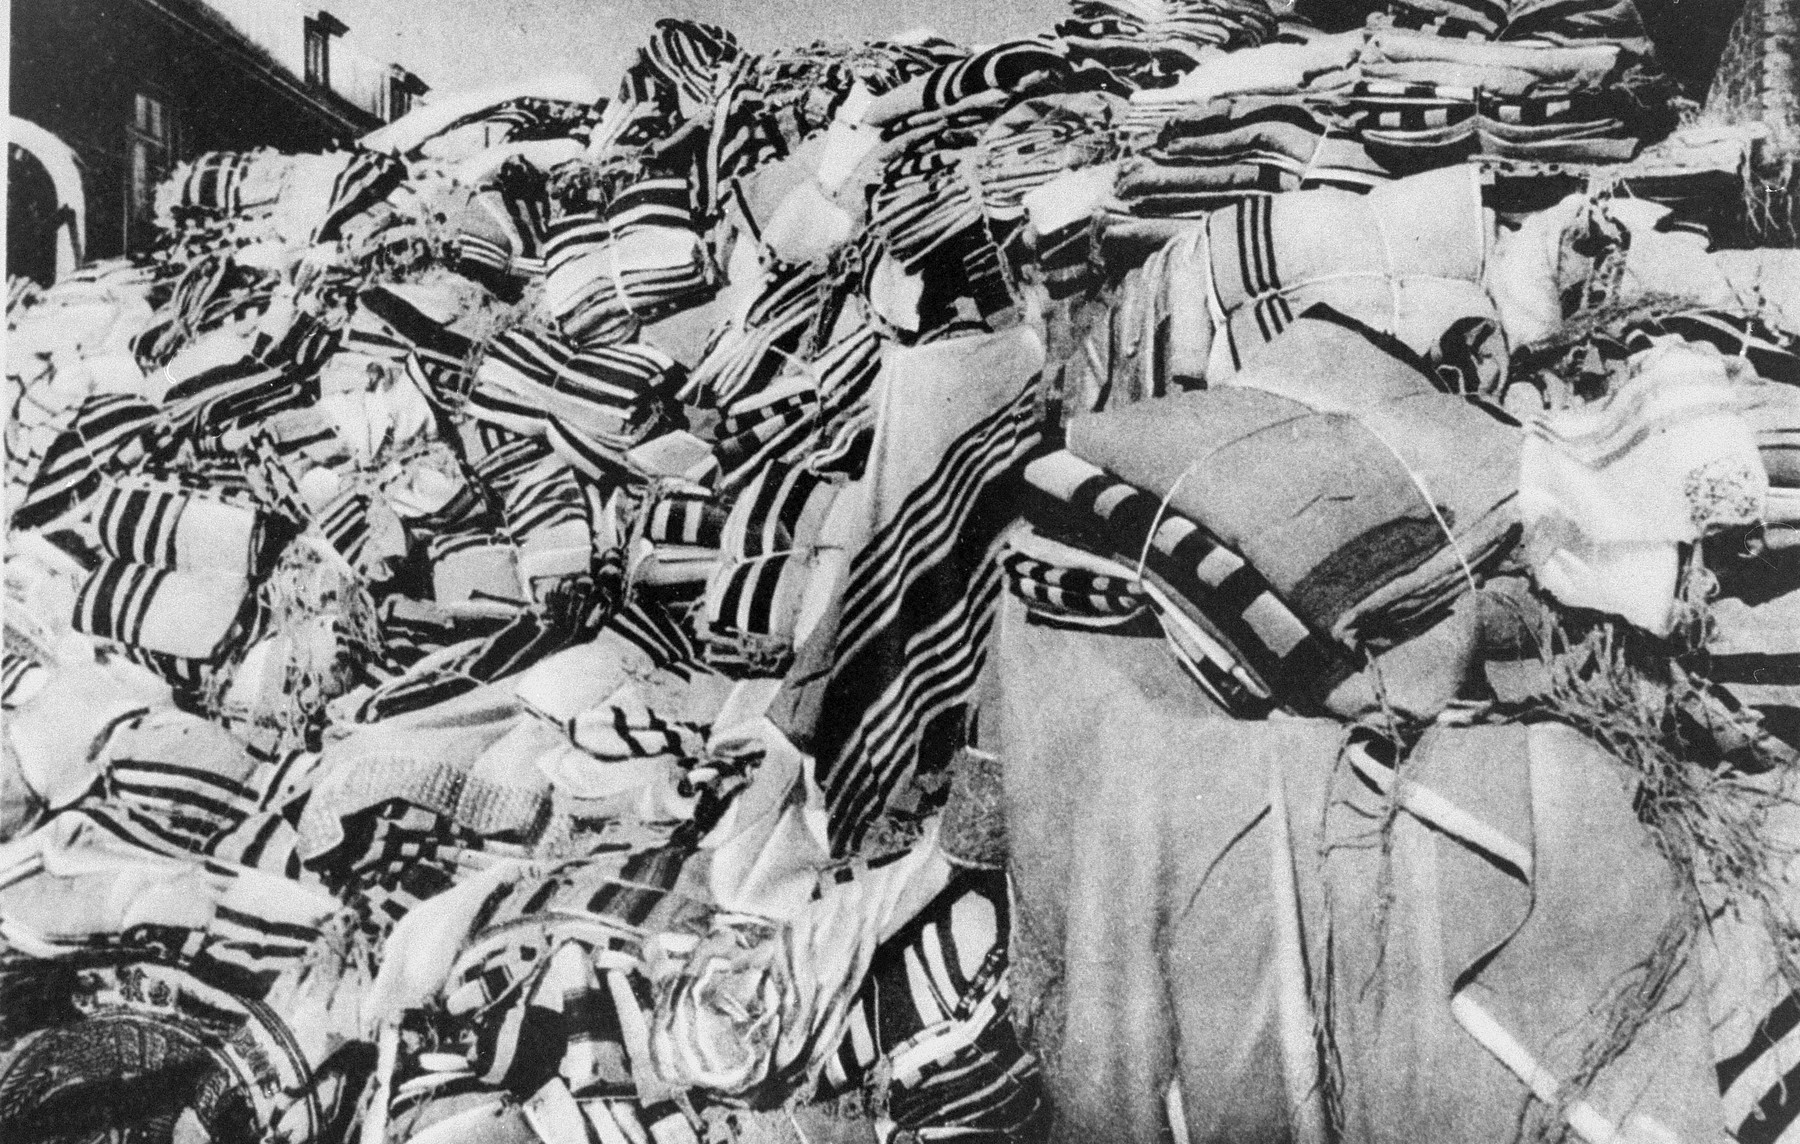 A large pile of prayer shawls (tallesim, tallitot) that were confiscated from arriving prisoners are stored in one of the warehouses in Auschwitz.